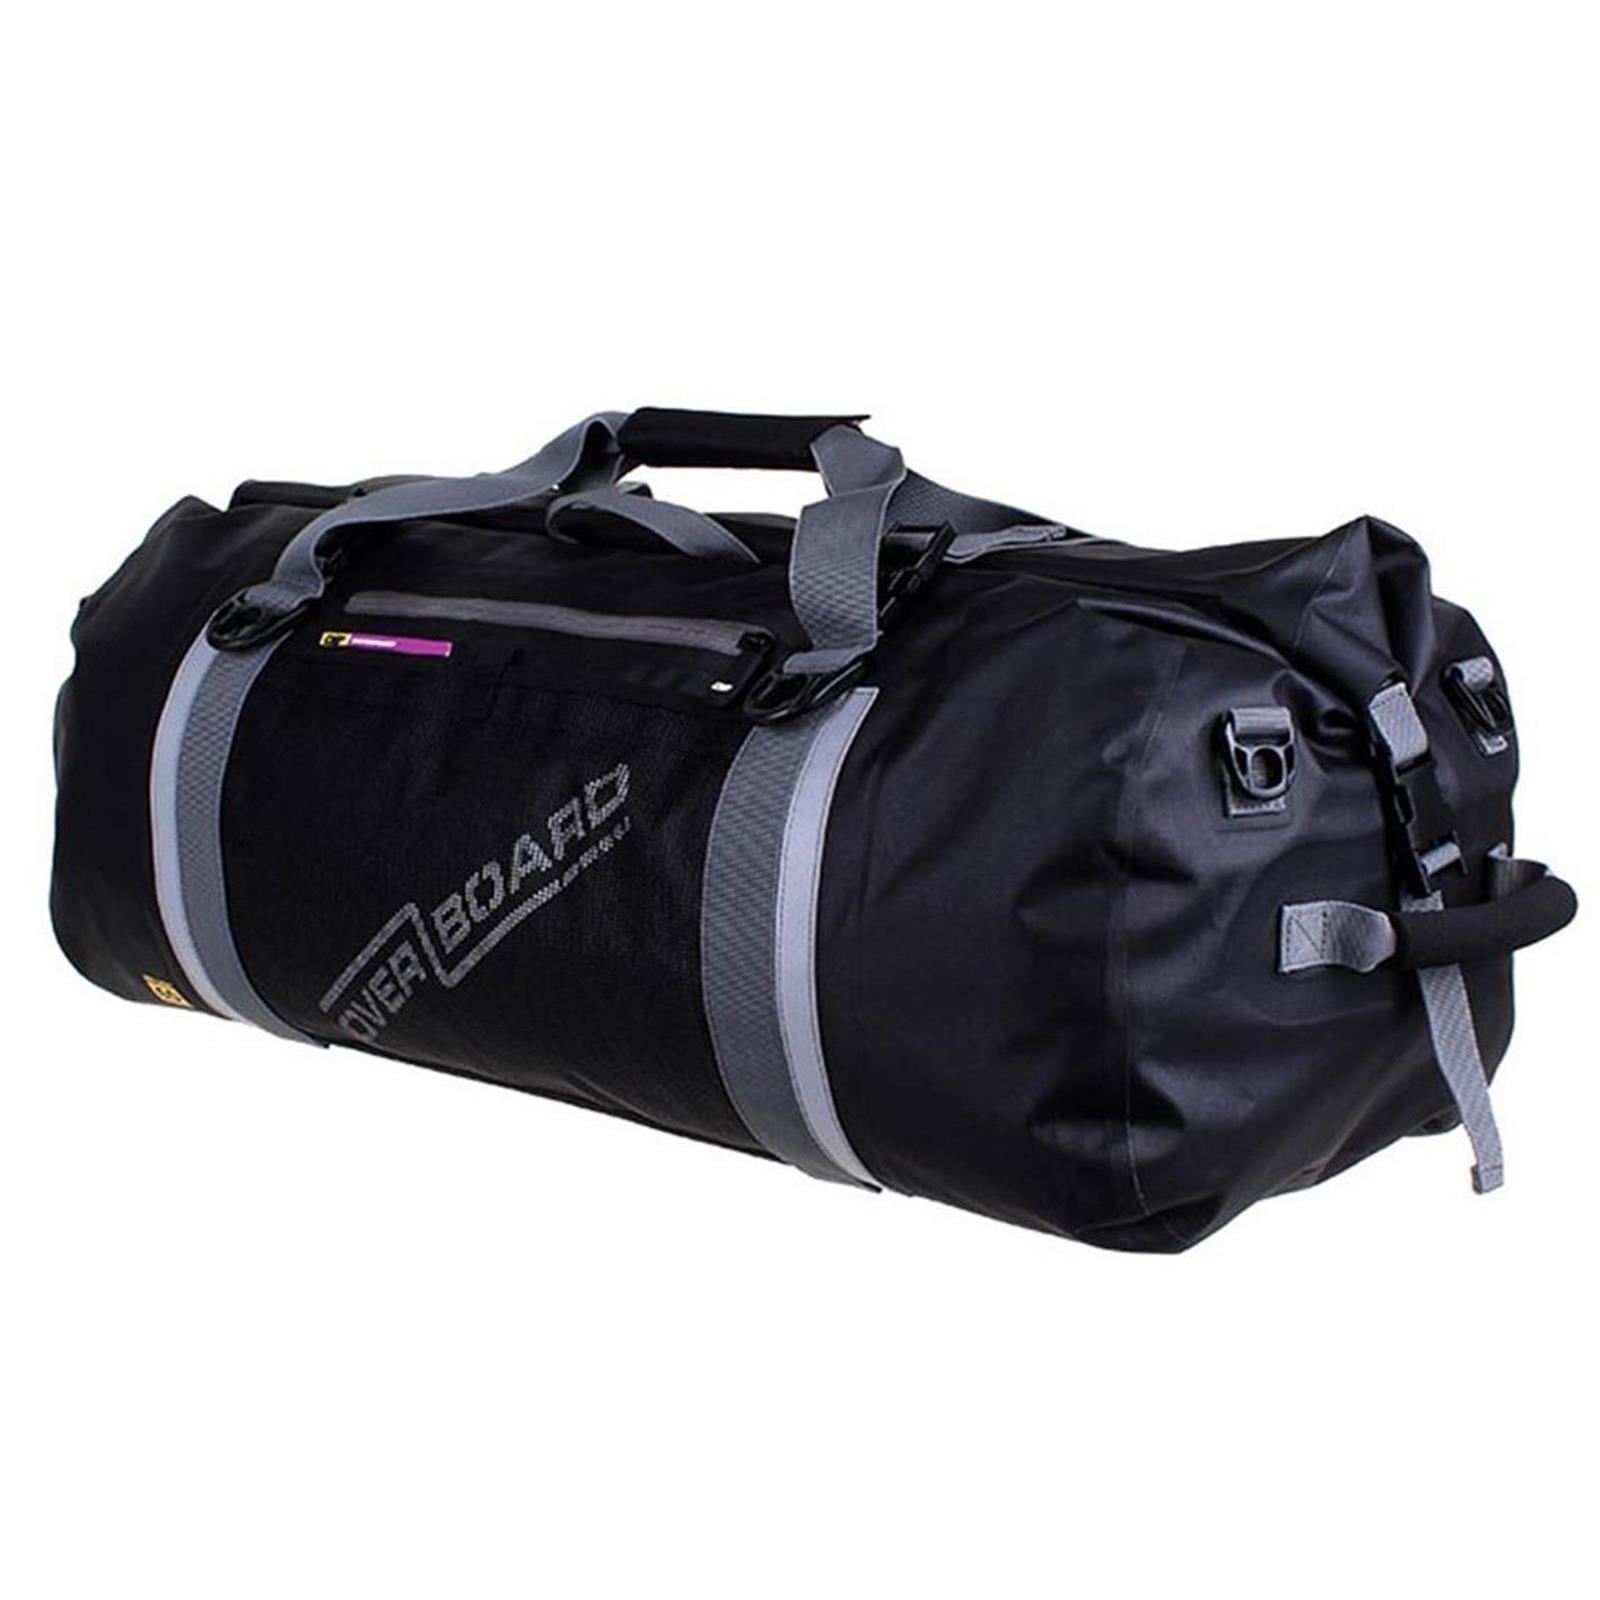 OverBoard wasserdichte Duffel Bag LIGHT 60 L Schw OB1165BLK  Pro-Light